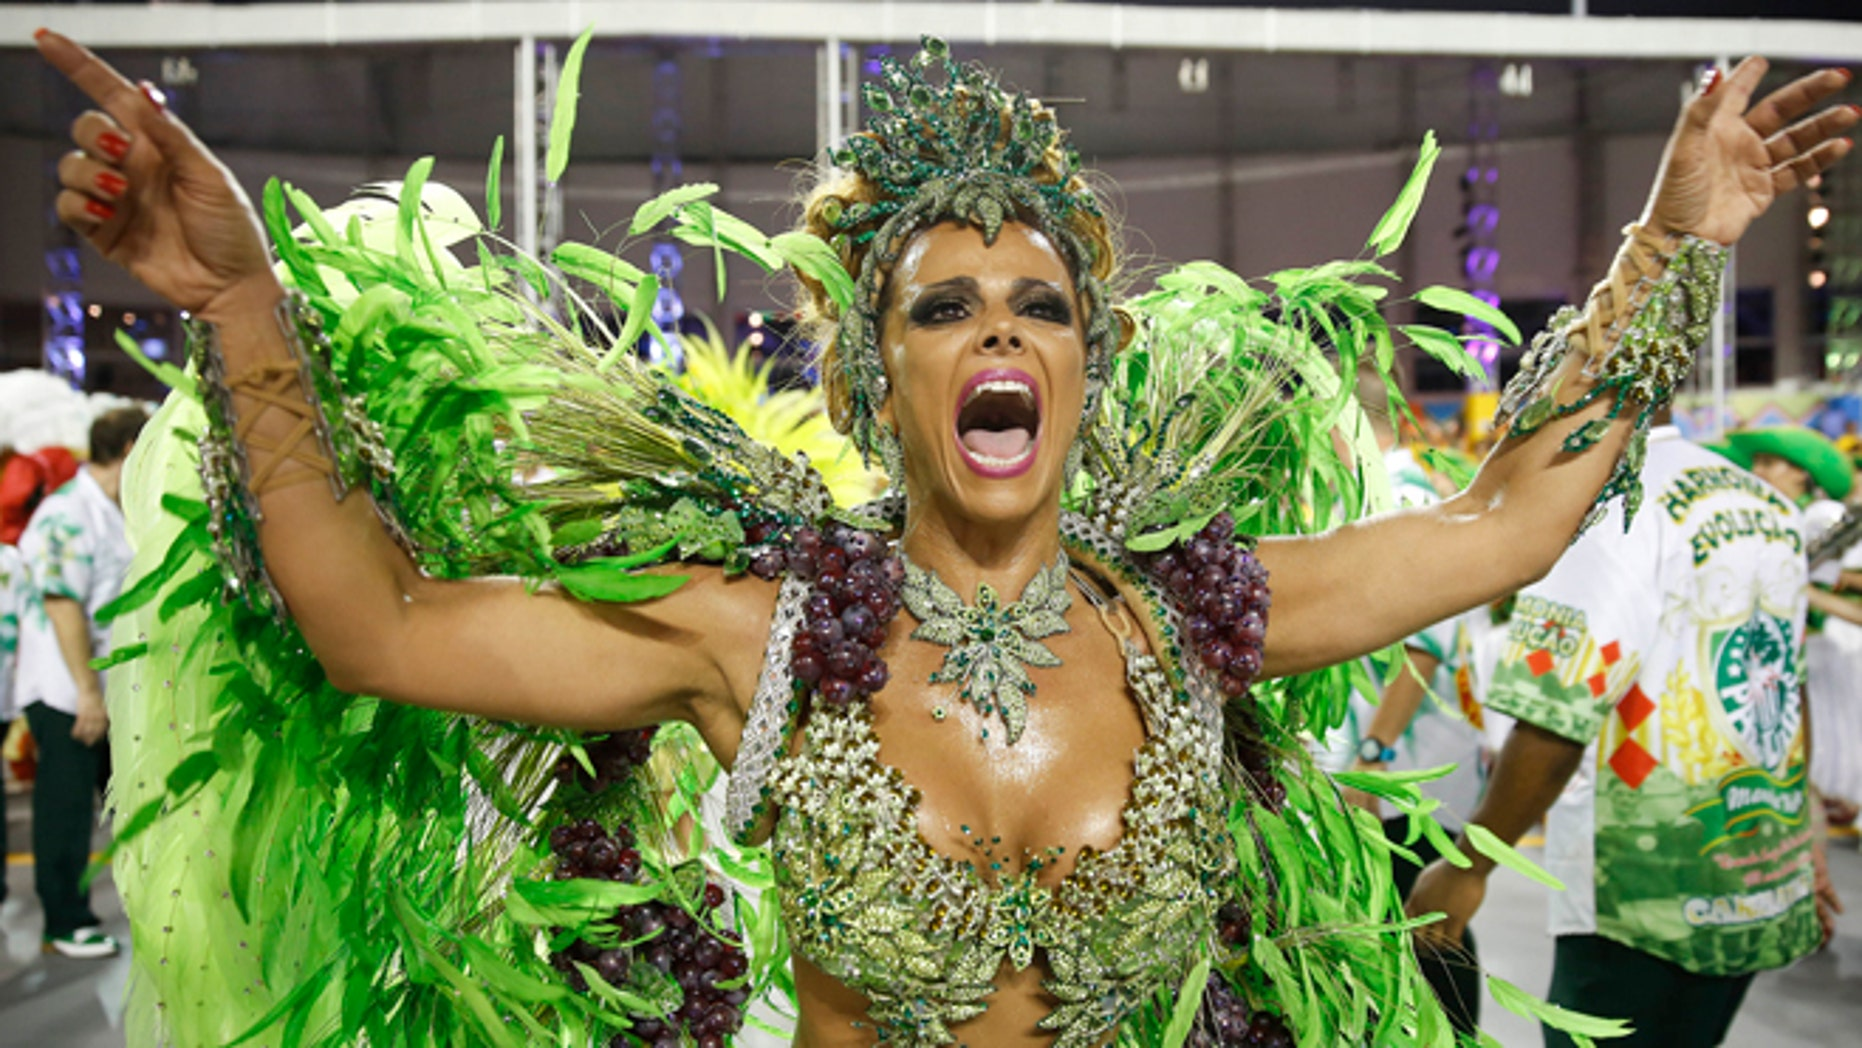 A dancer from the Mancha Verde samba school performs in the Carnival parade at the Sambodromo in Sao Paulo, Brazil, Friday, Feb. 13, 2015. (AP Photo/Andre Penner)